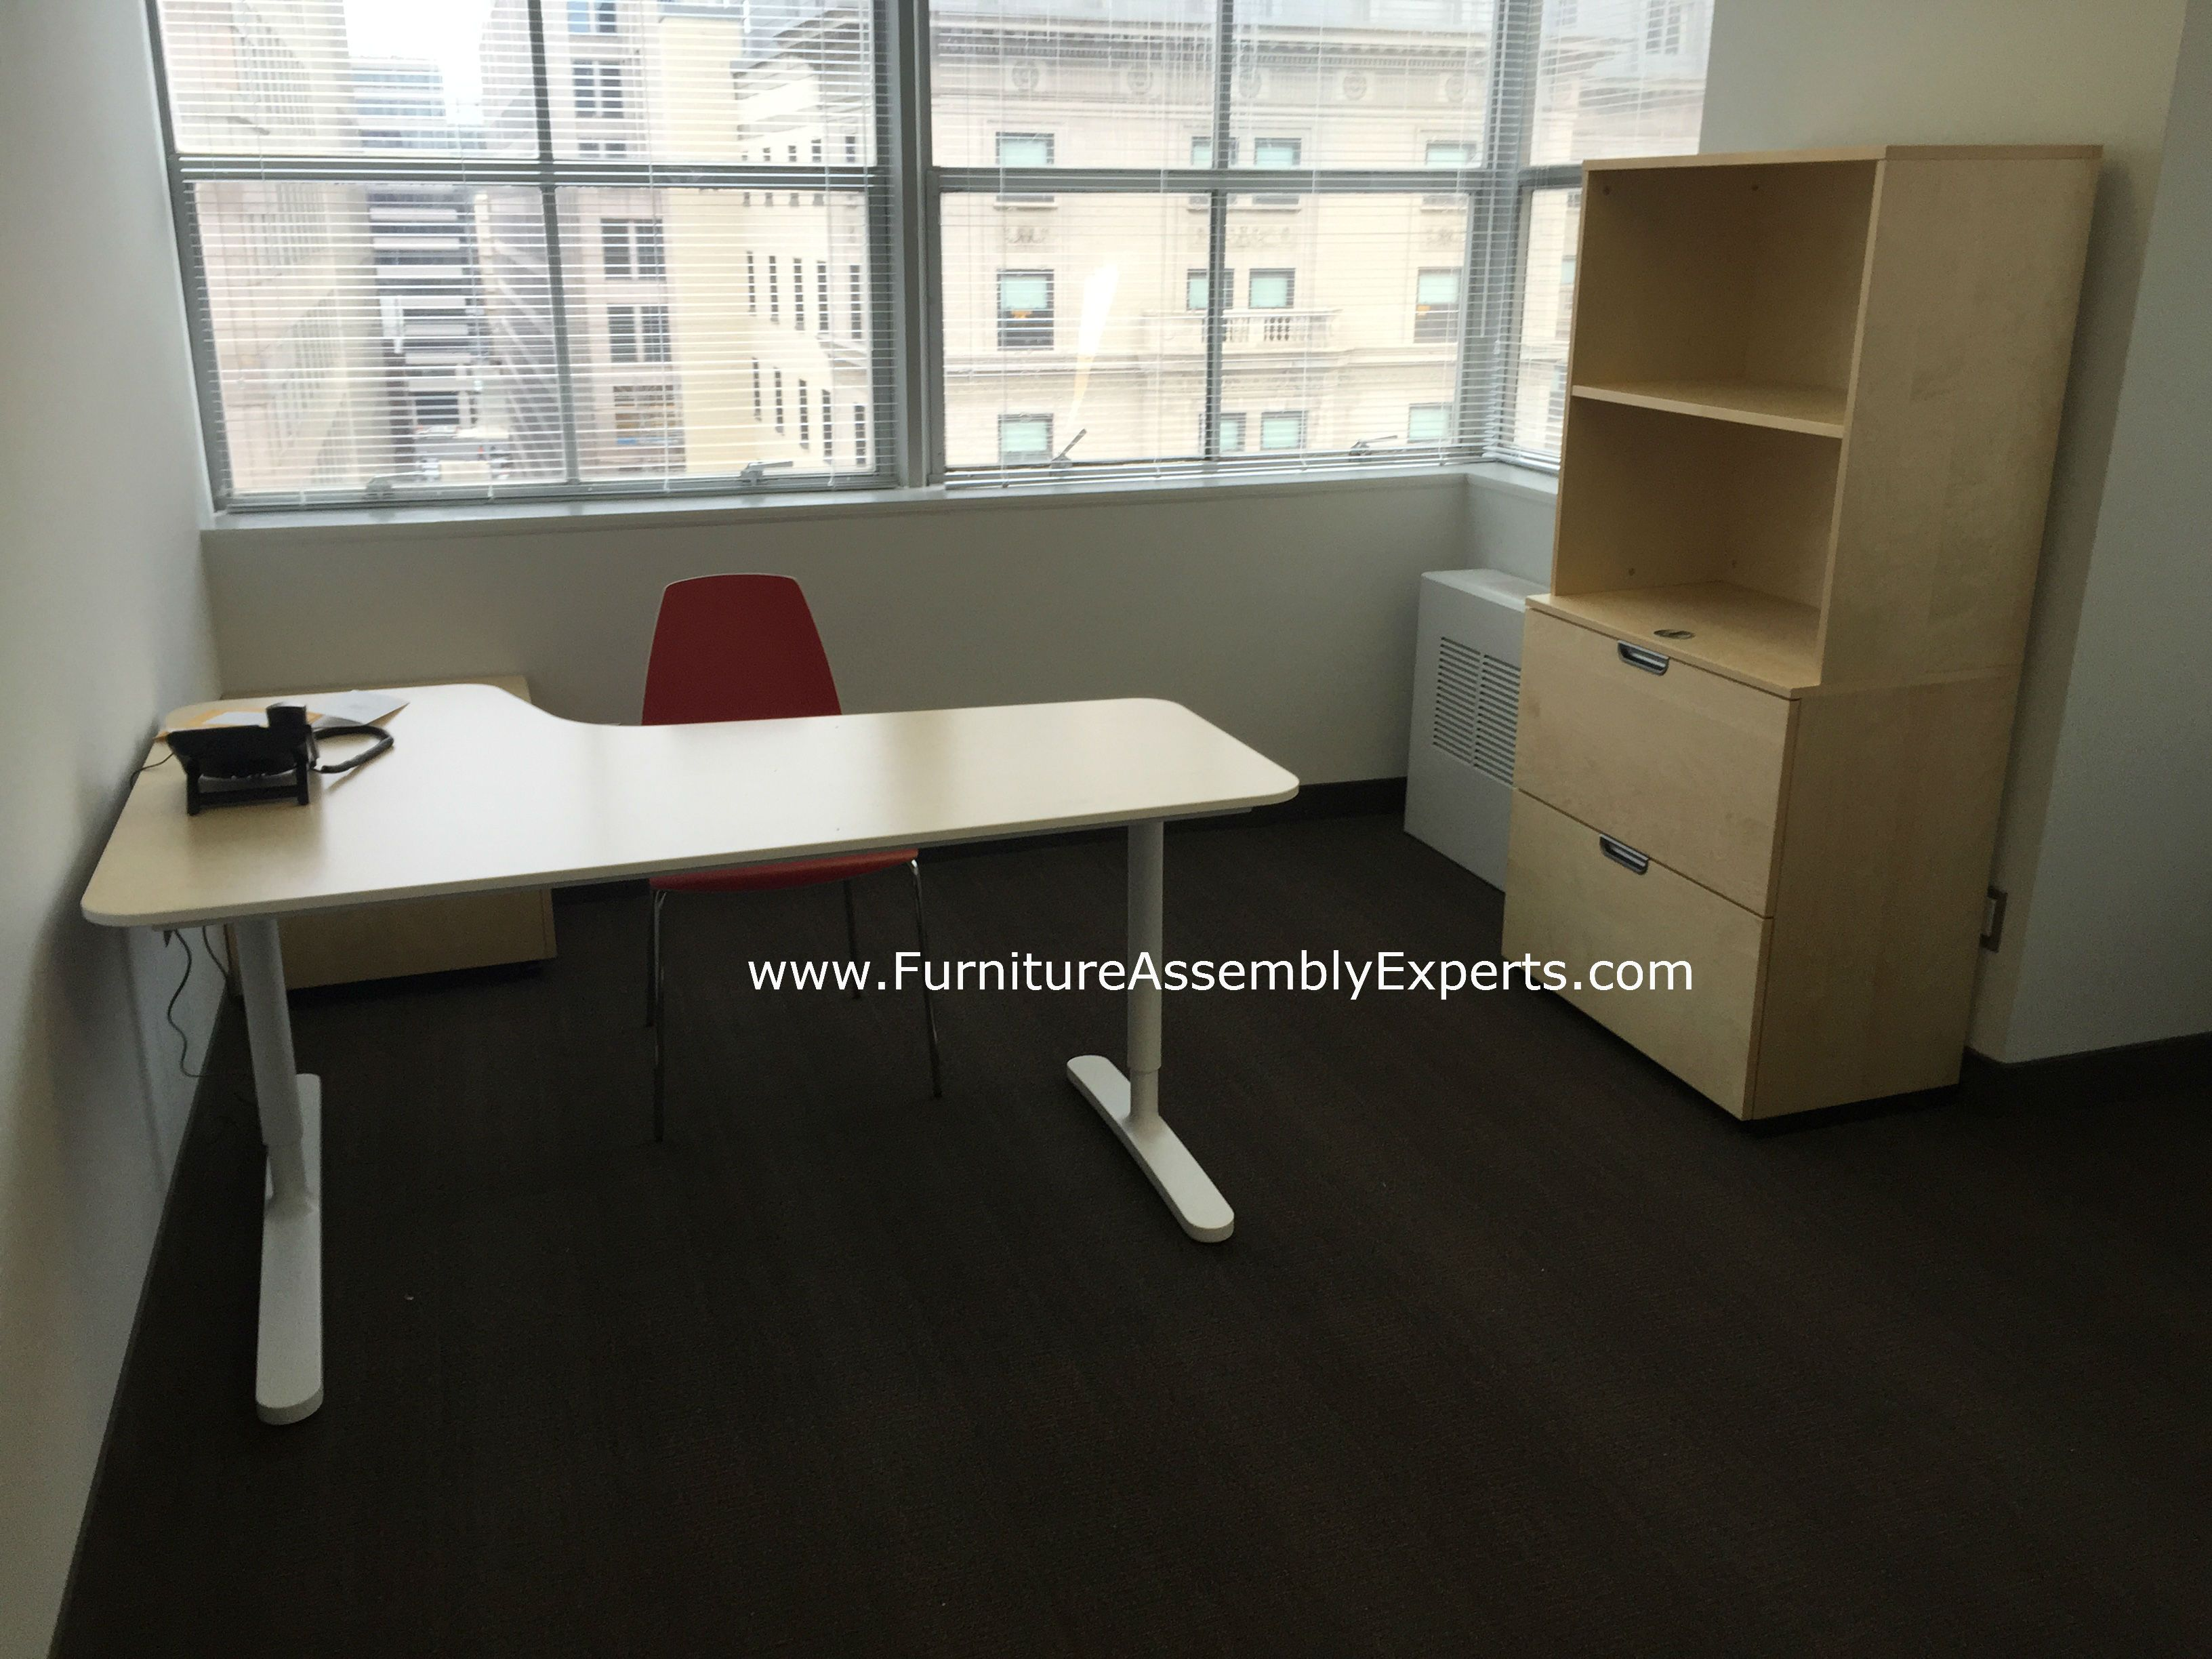 Ikea Bekant Office Desk, Galant File Cabinet And Storage Assembled For A  Company New Office Nice Look